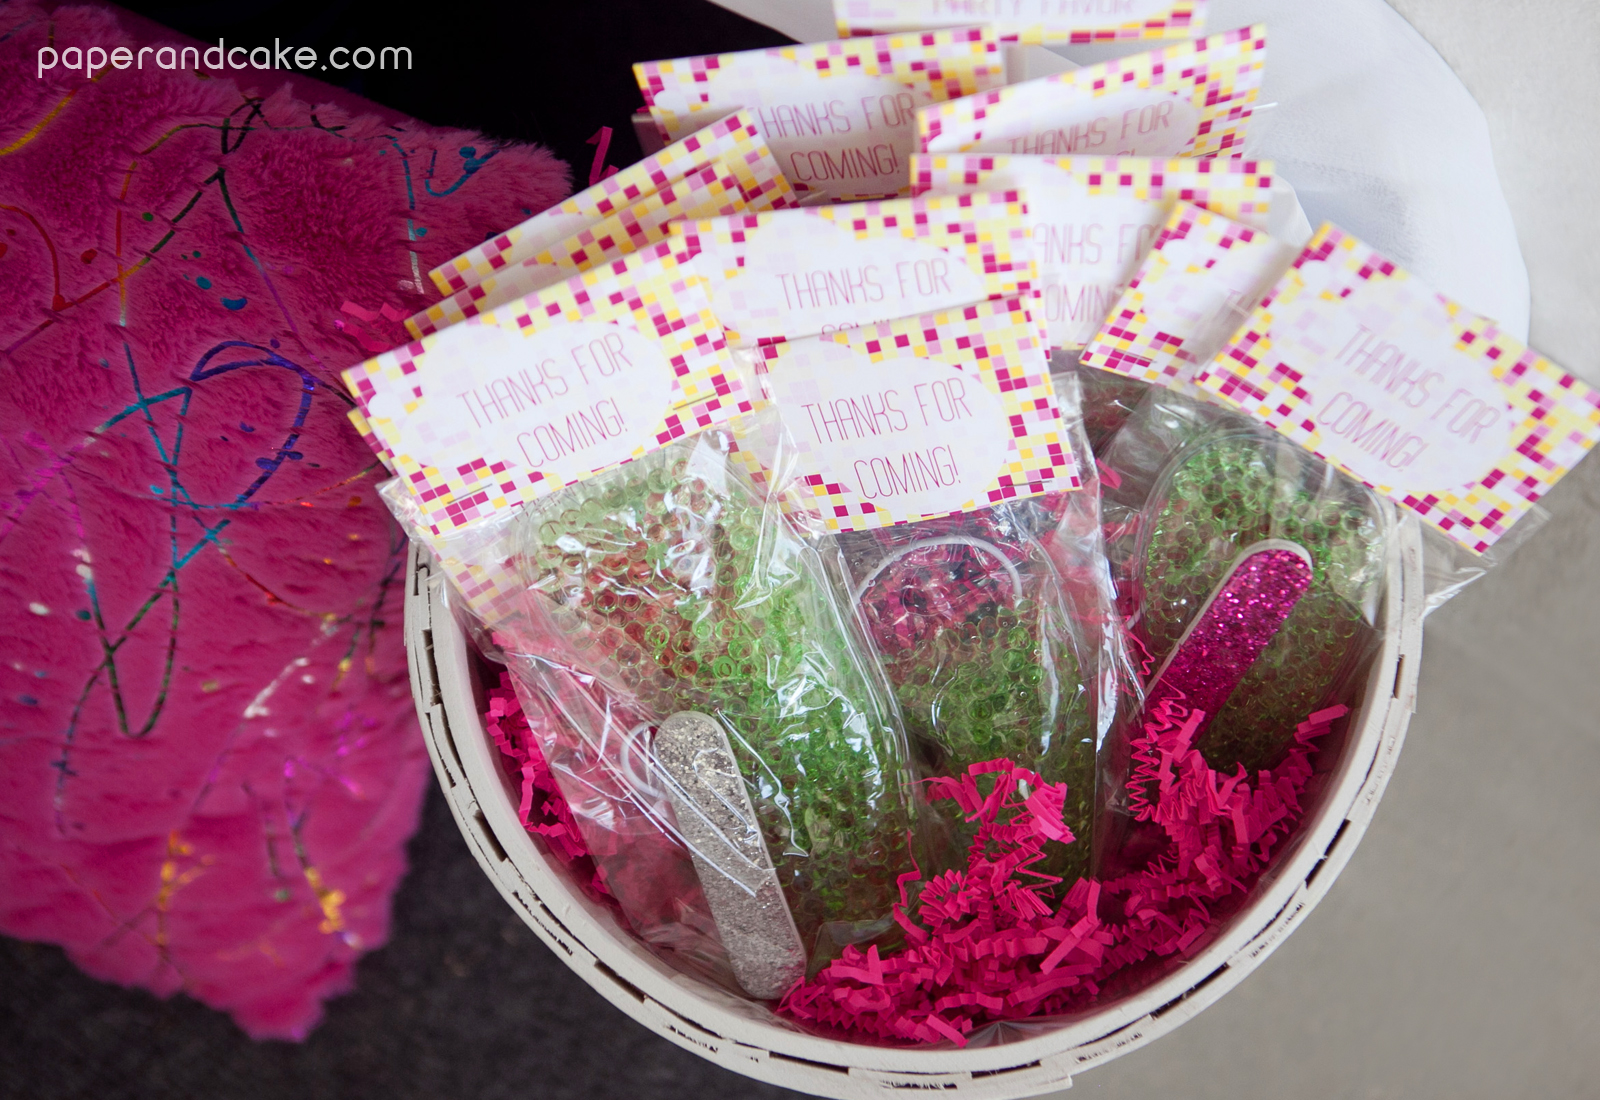 P Amp C Real Life Party Modern Spa Birthday Party Paper And